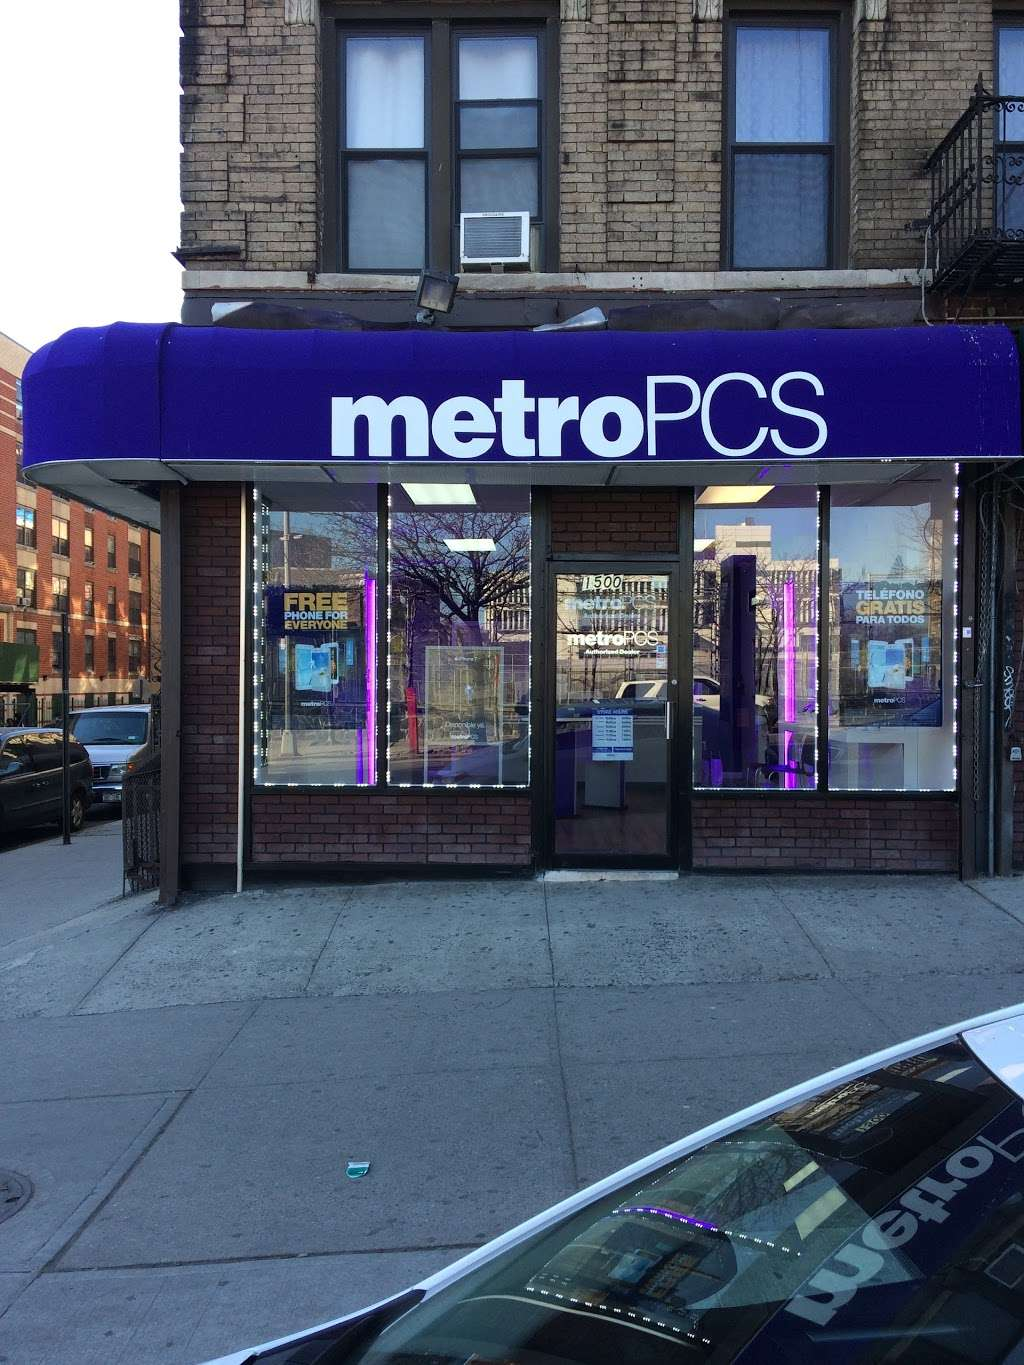 Metro by T-Mobile - electronics store  | Photo 2 of 4 | Address: 1500 Amsterdam Ave, New York, NY 10031, USA | Phone: (646) 869-0435